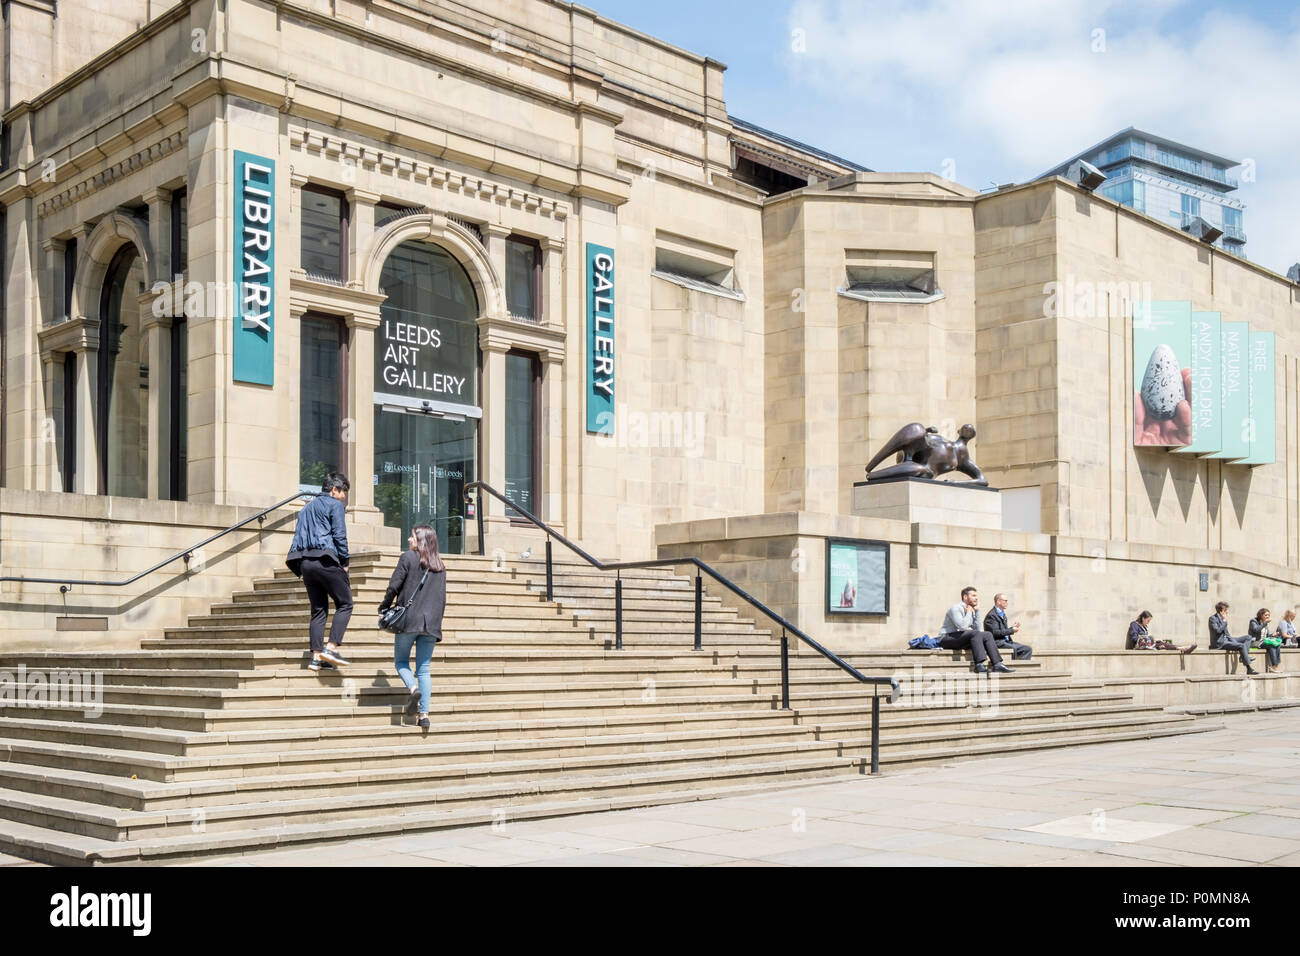 Leeds Central Library and Leeds Art Gallery, Leeds, West Yorkshire, England, UK Stock Photo